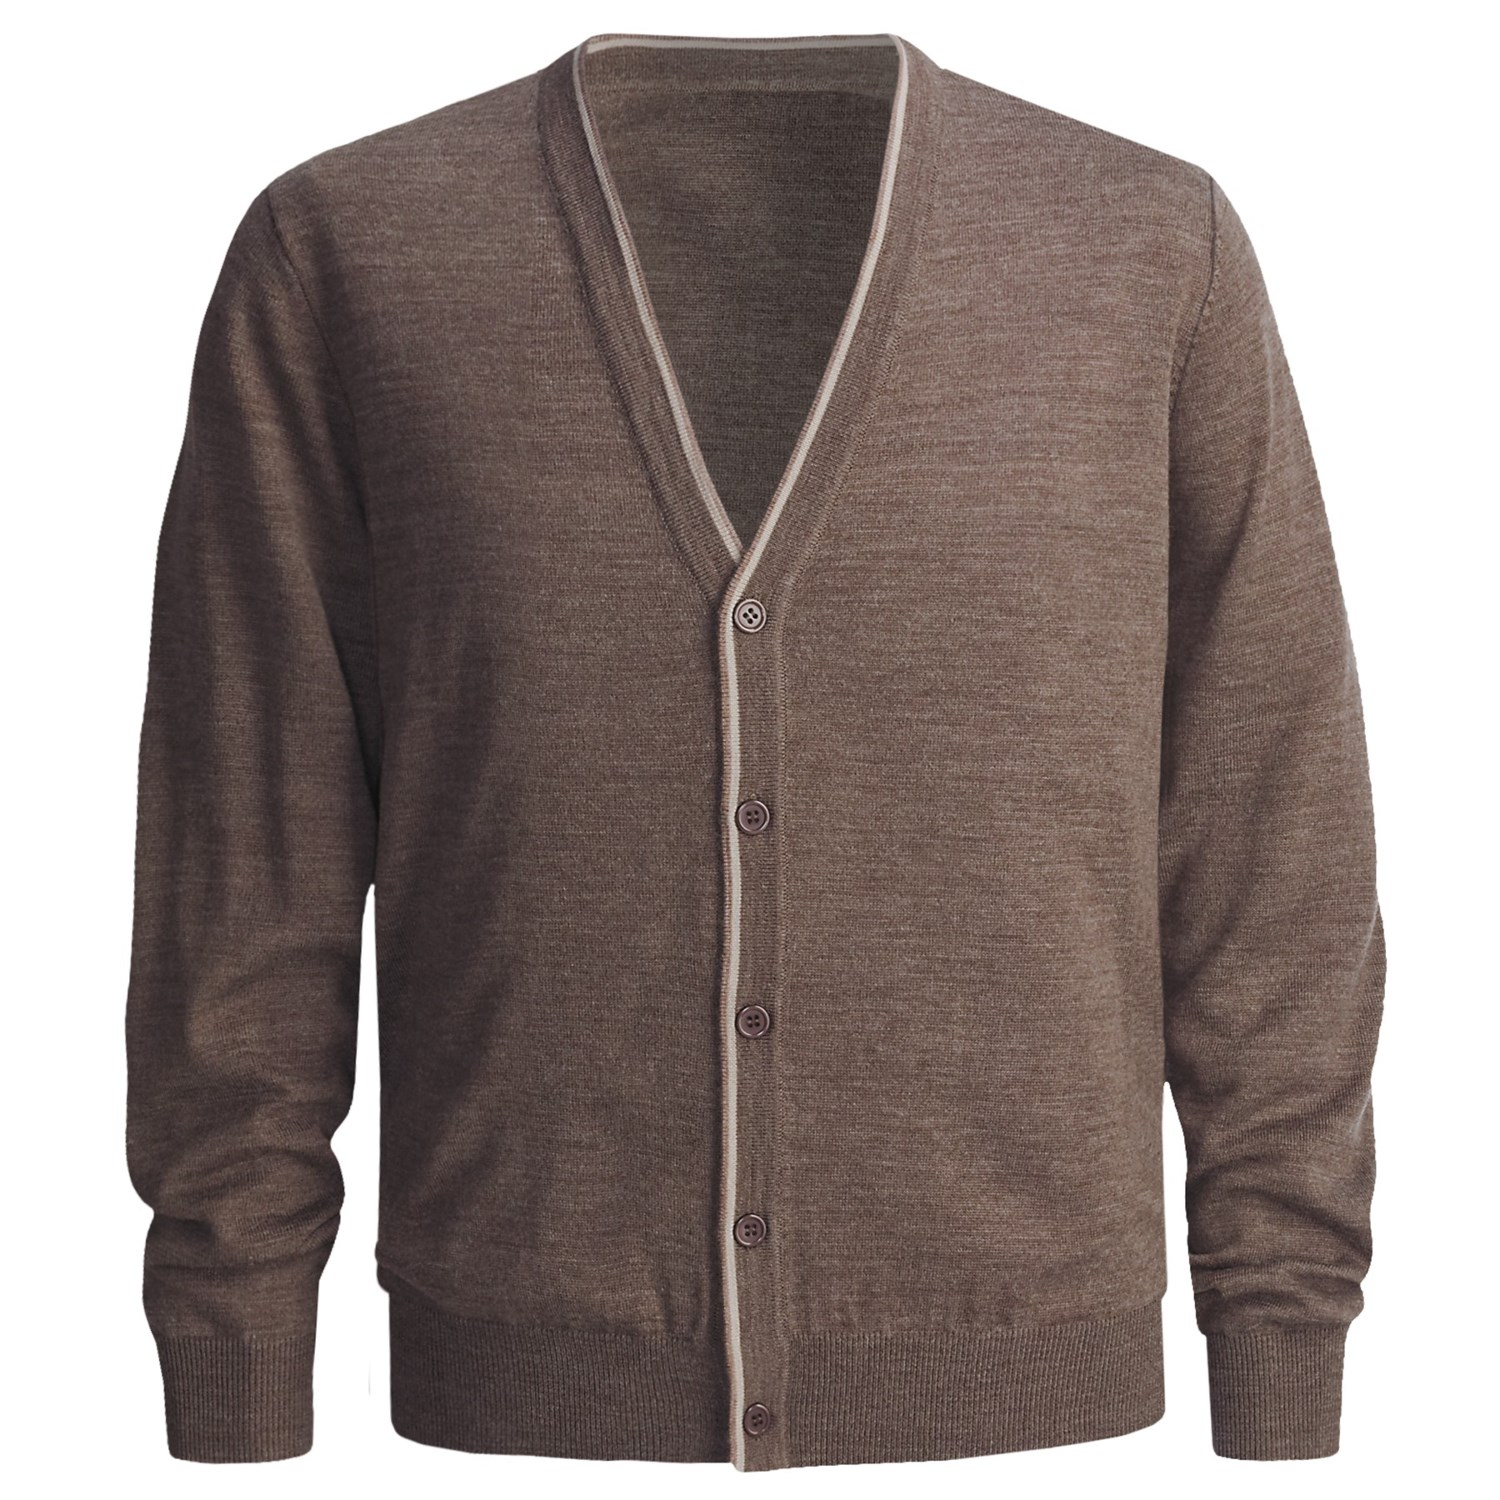 Get Warm and Fuzzy in Big & Tall Sweaters and Sweater Vests The sweater is often an unsung hero in a man's wardrobe. You can't always wear them all year so sometimes it's easy to forget how comfy a sweater is on a chilly day.